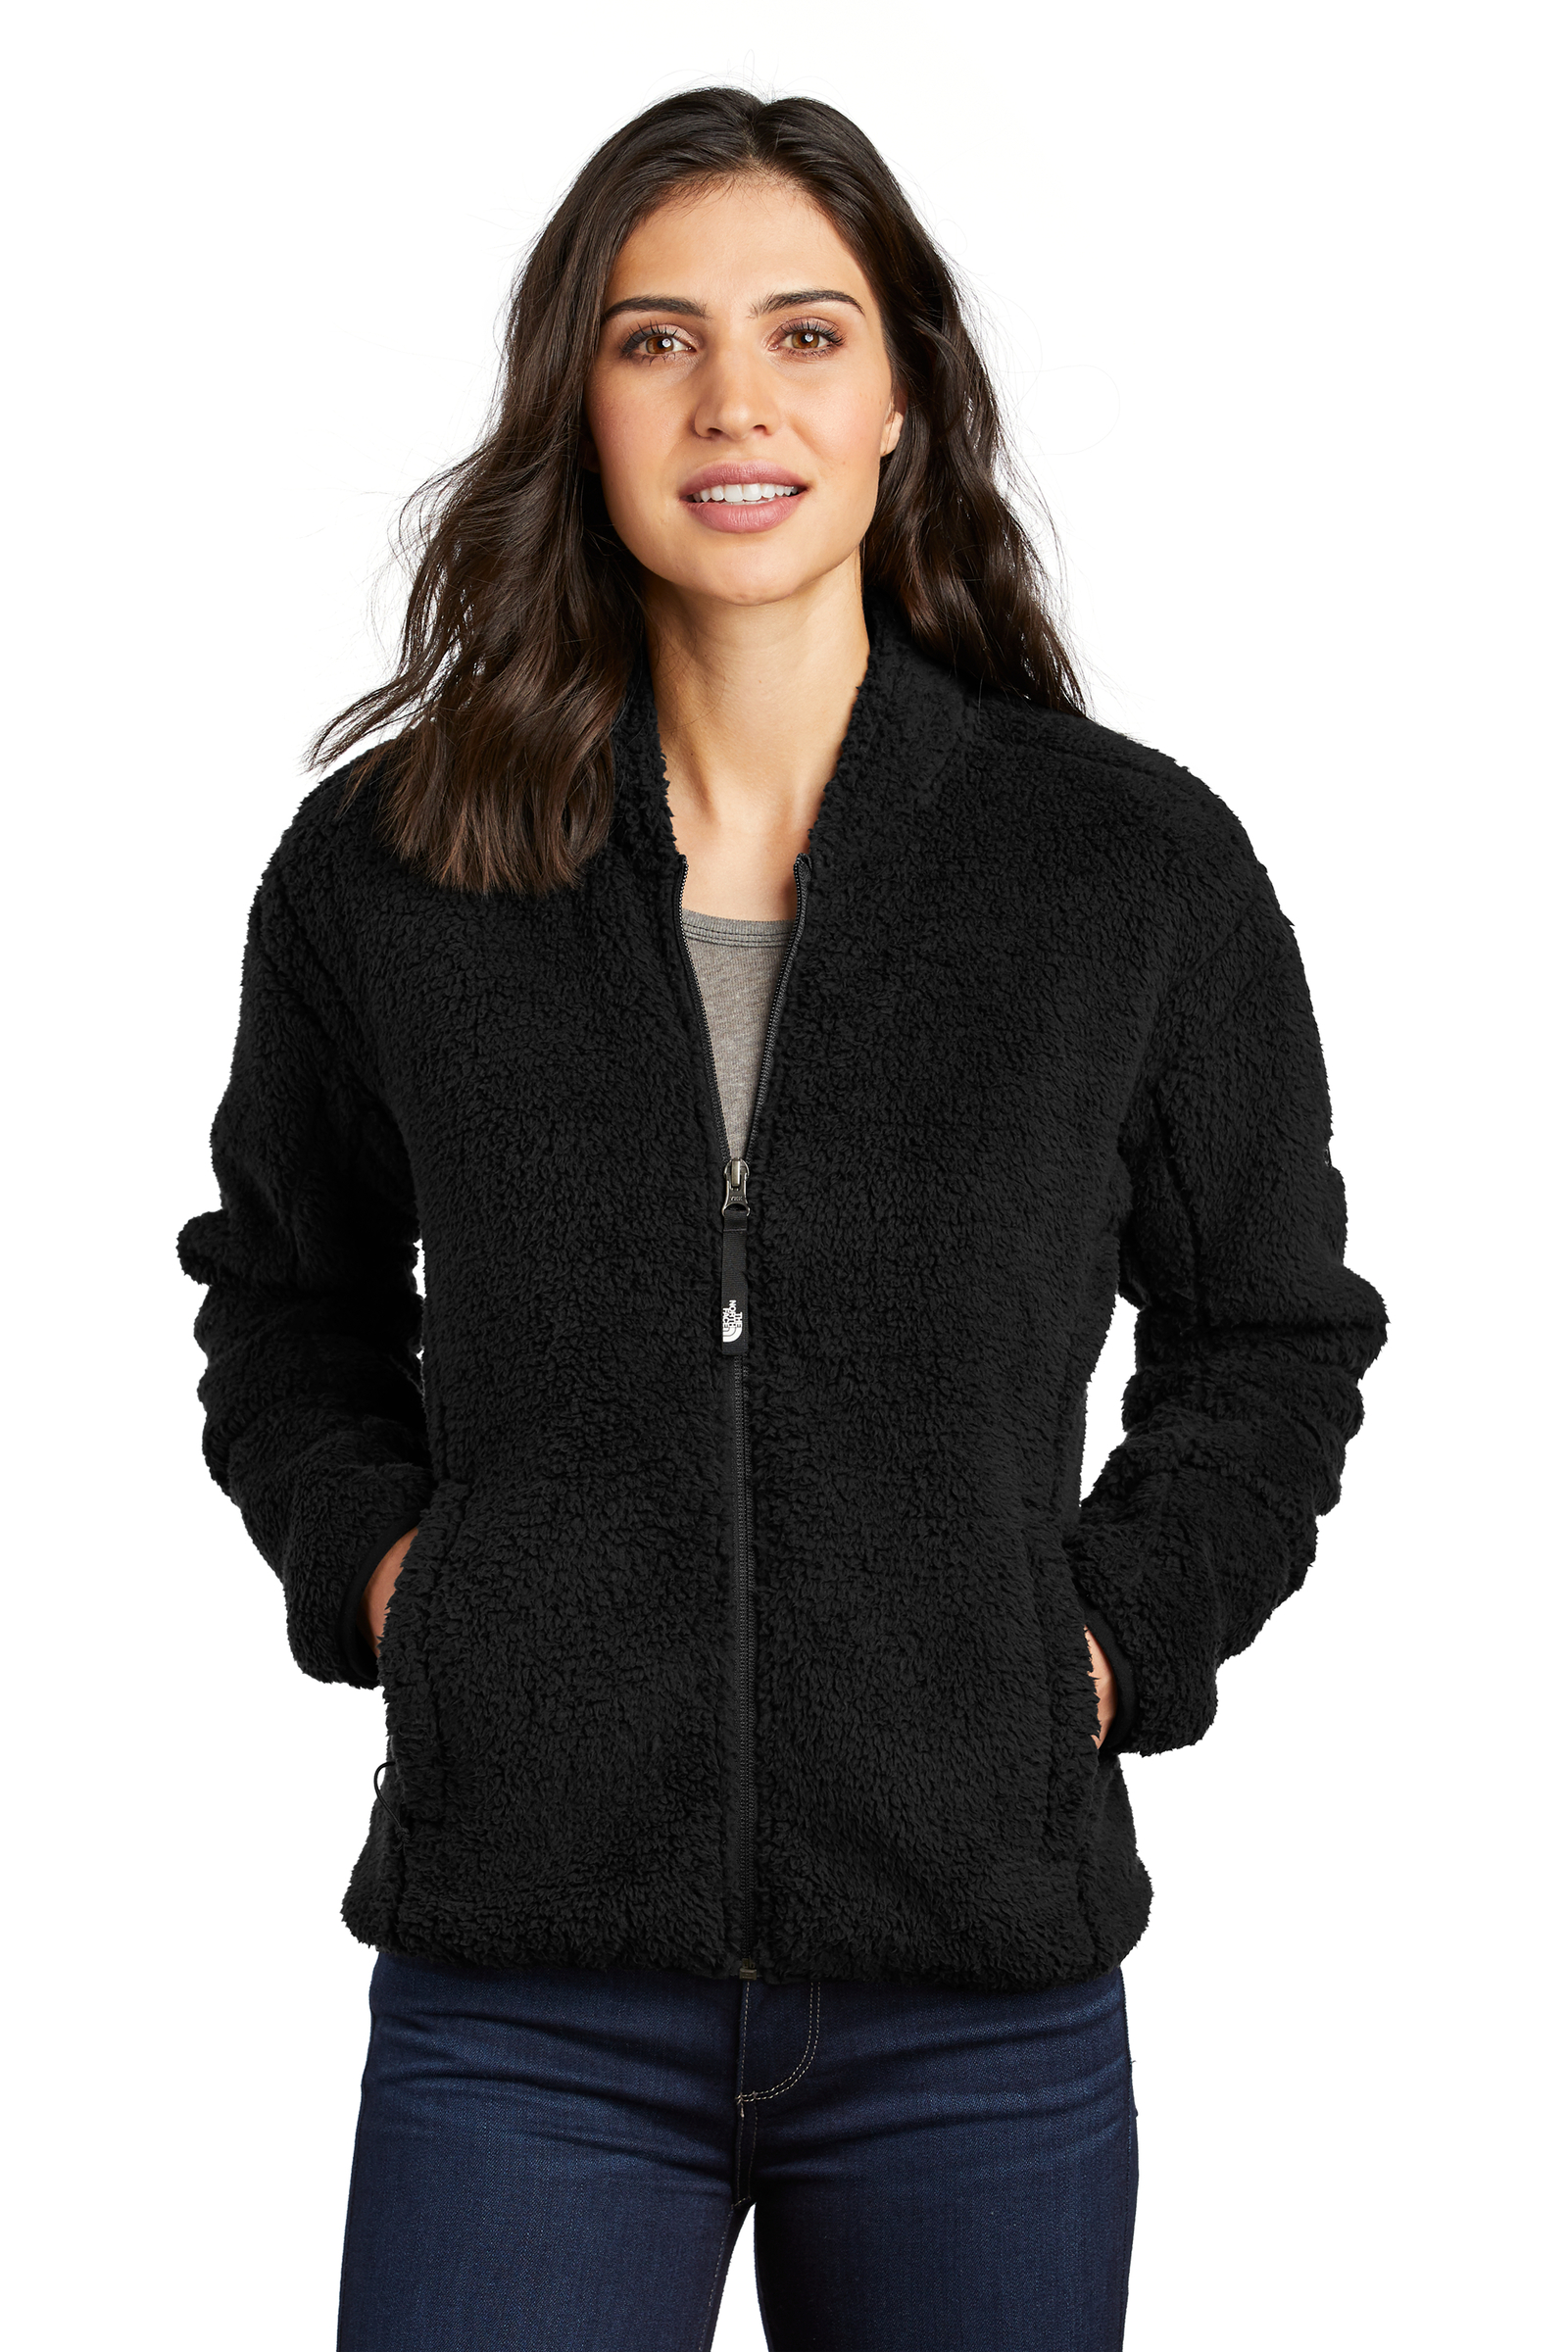 The North Face Embroidered Women's High Loft Fleece